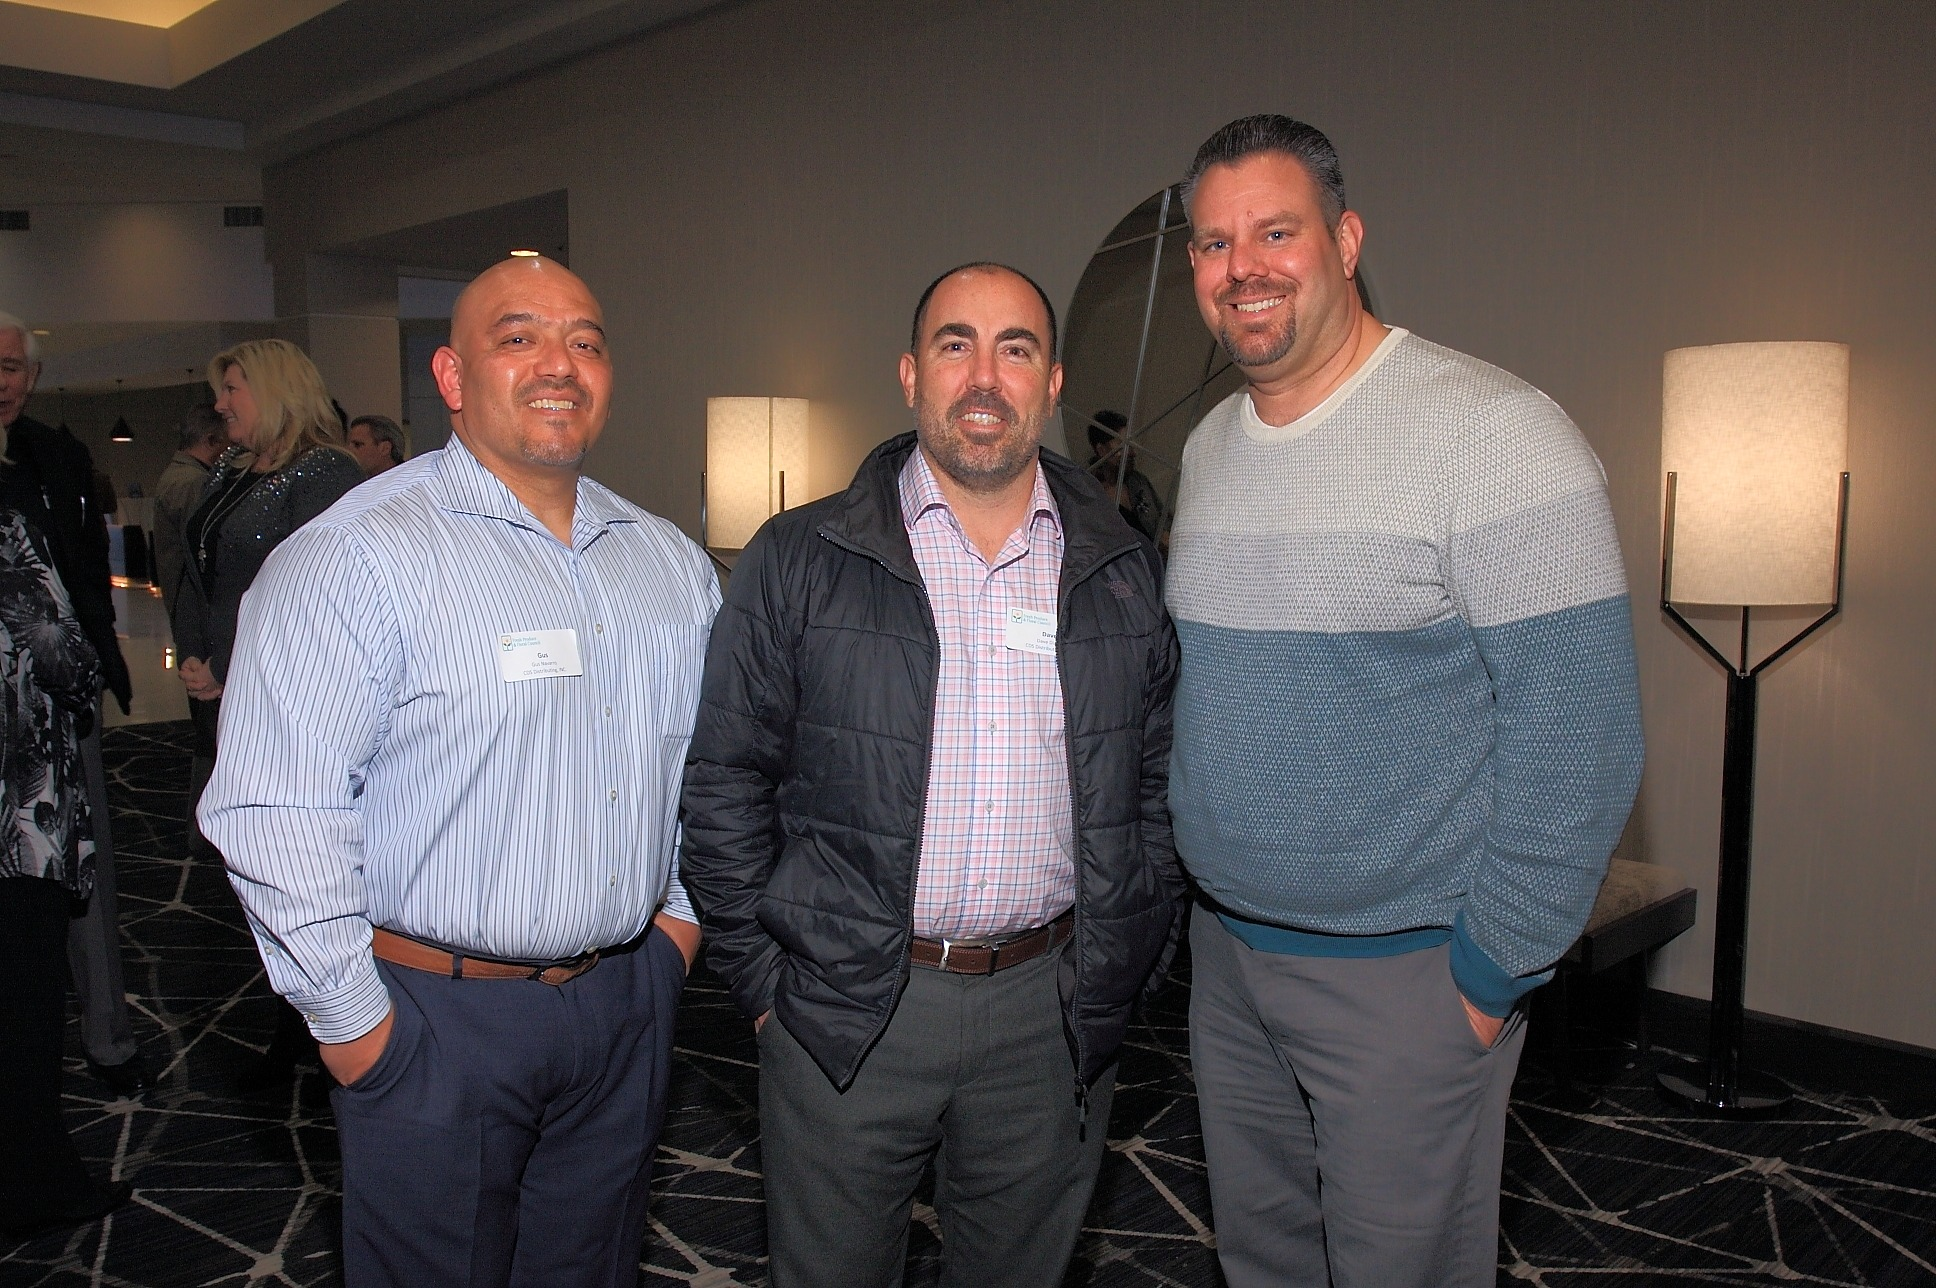 Gus Navarro and Dave Diego of CDS Distributing with Brian Cook of Pete's